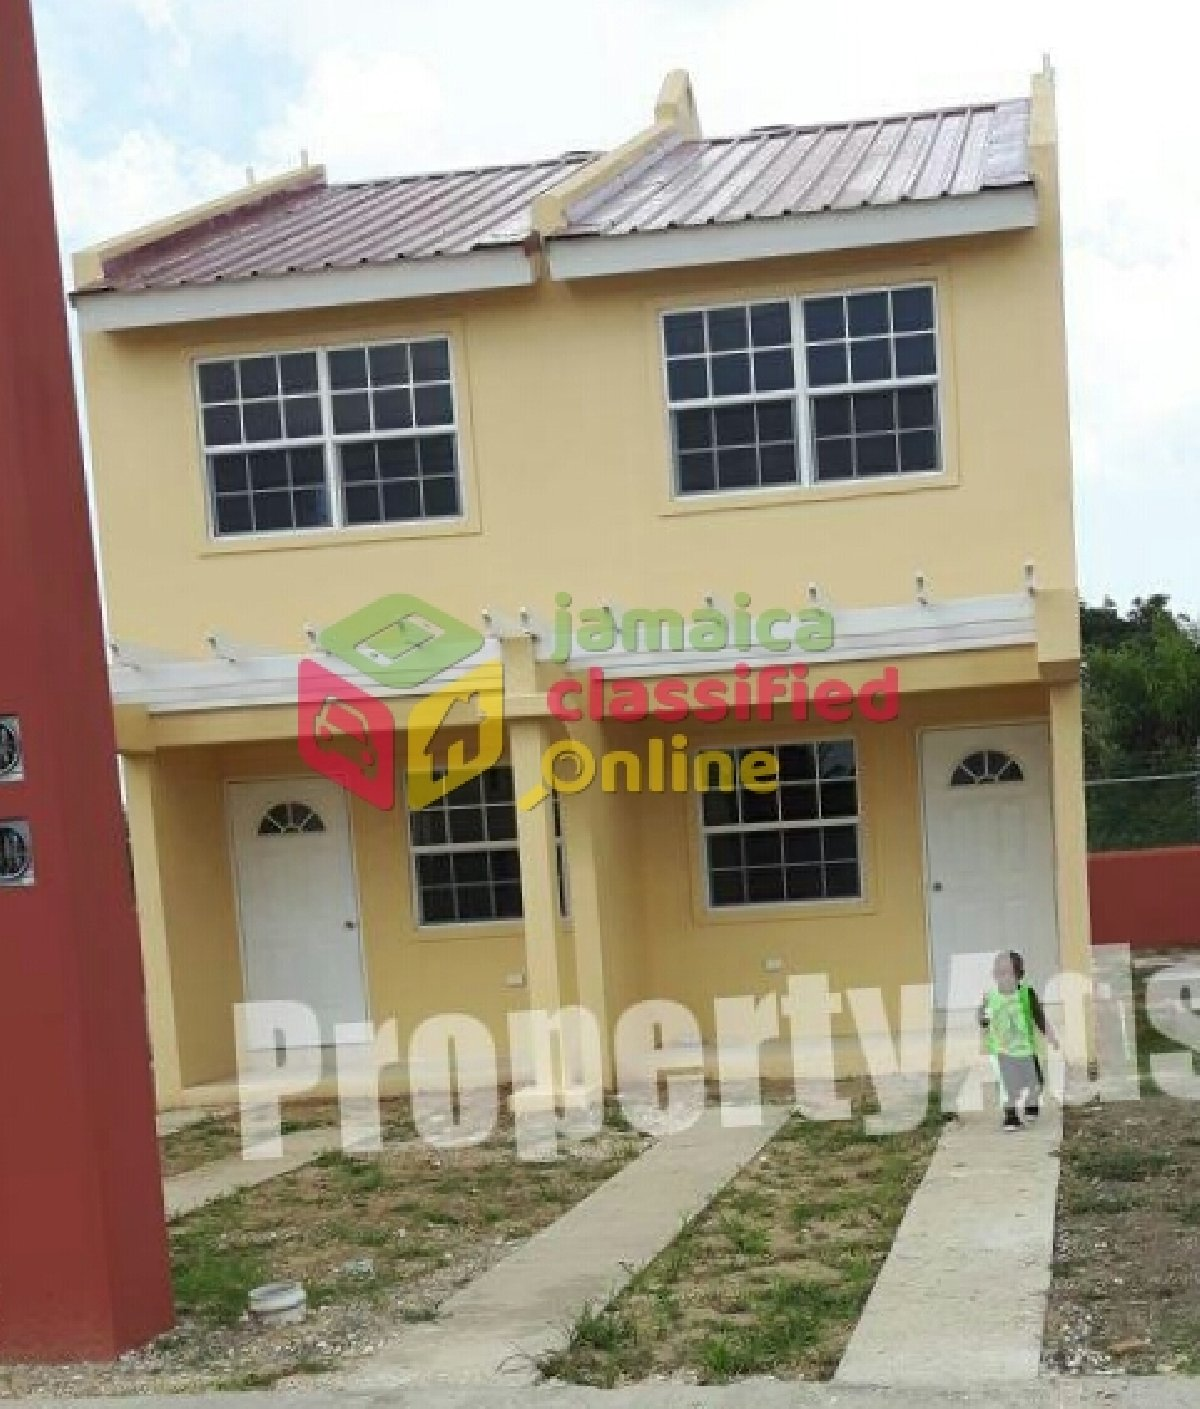 2 Bedroom Townhouse For Rent In Birthshire Court St